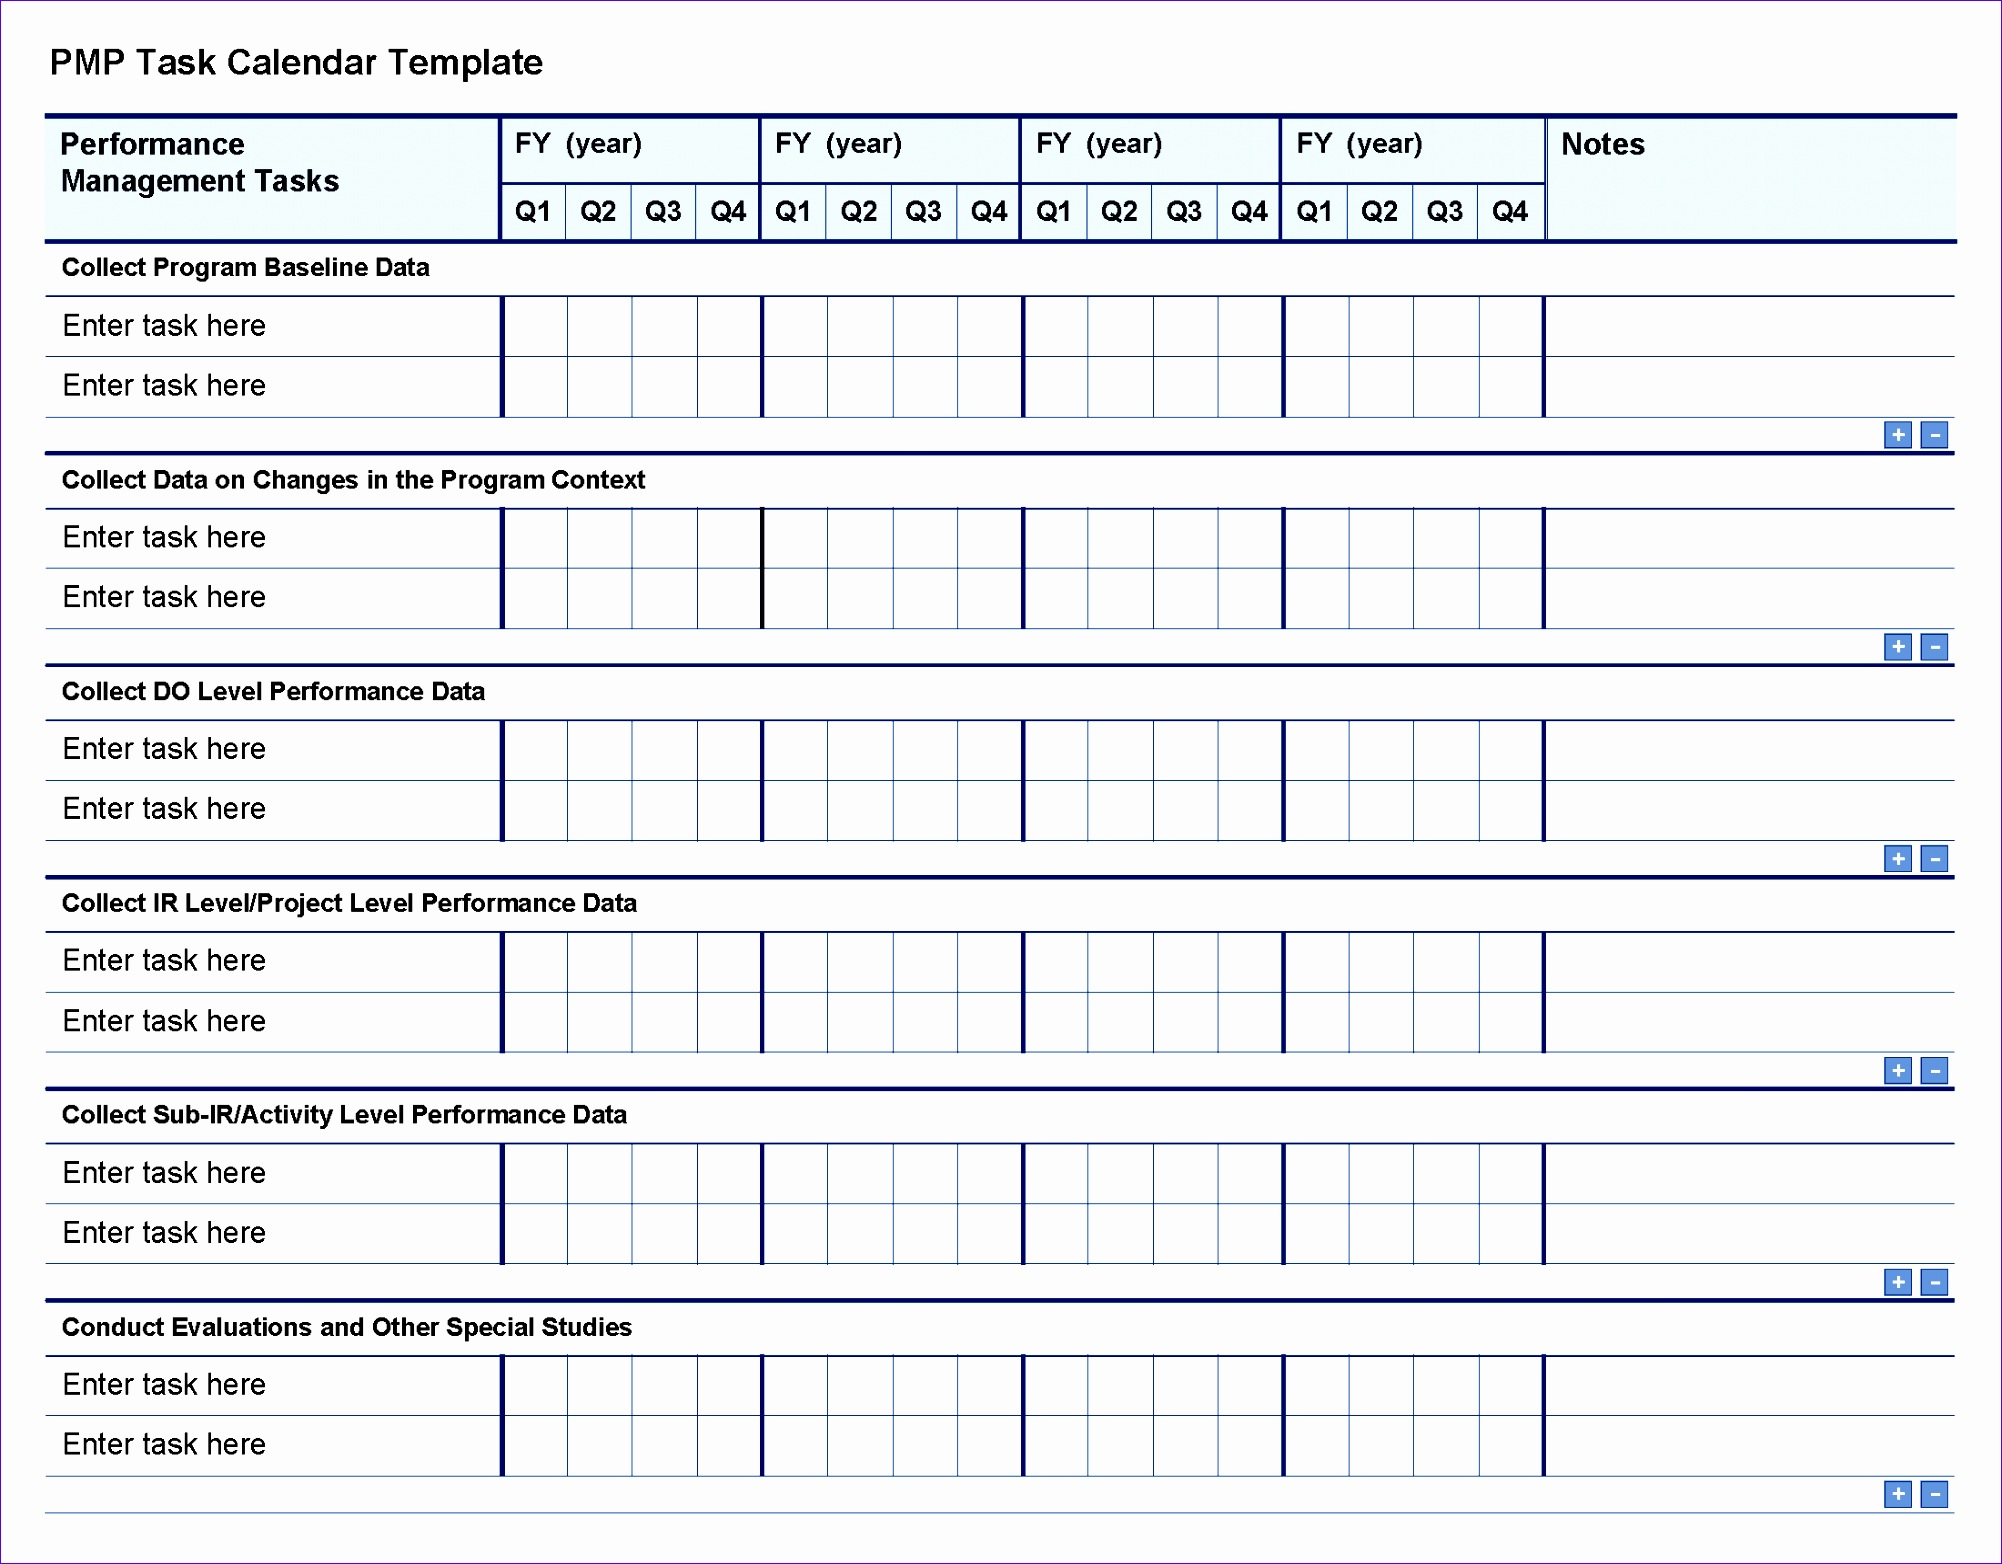 Excel 2007 Timeline Template Bggnh Awesome Project Calendar Template 2016